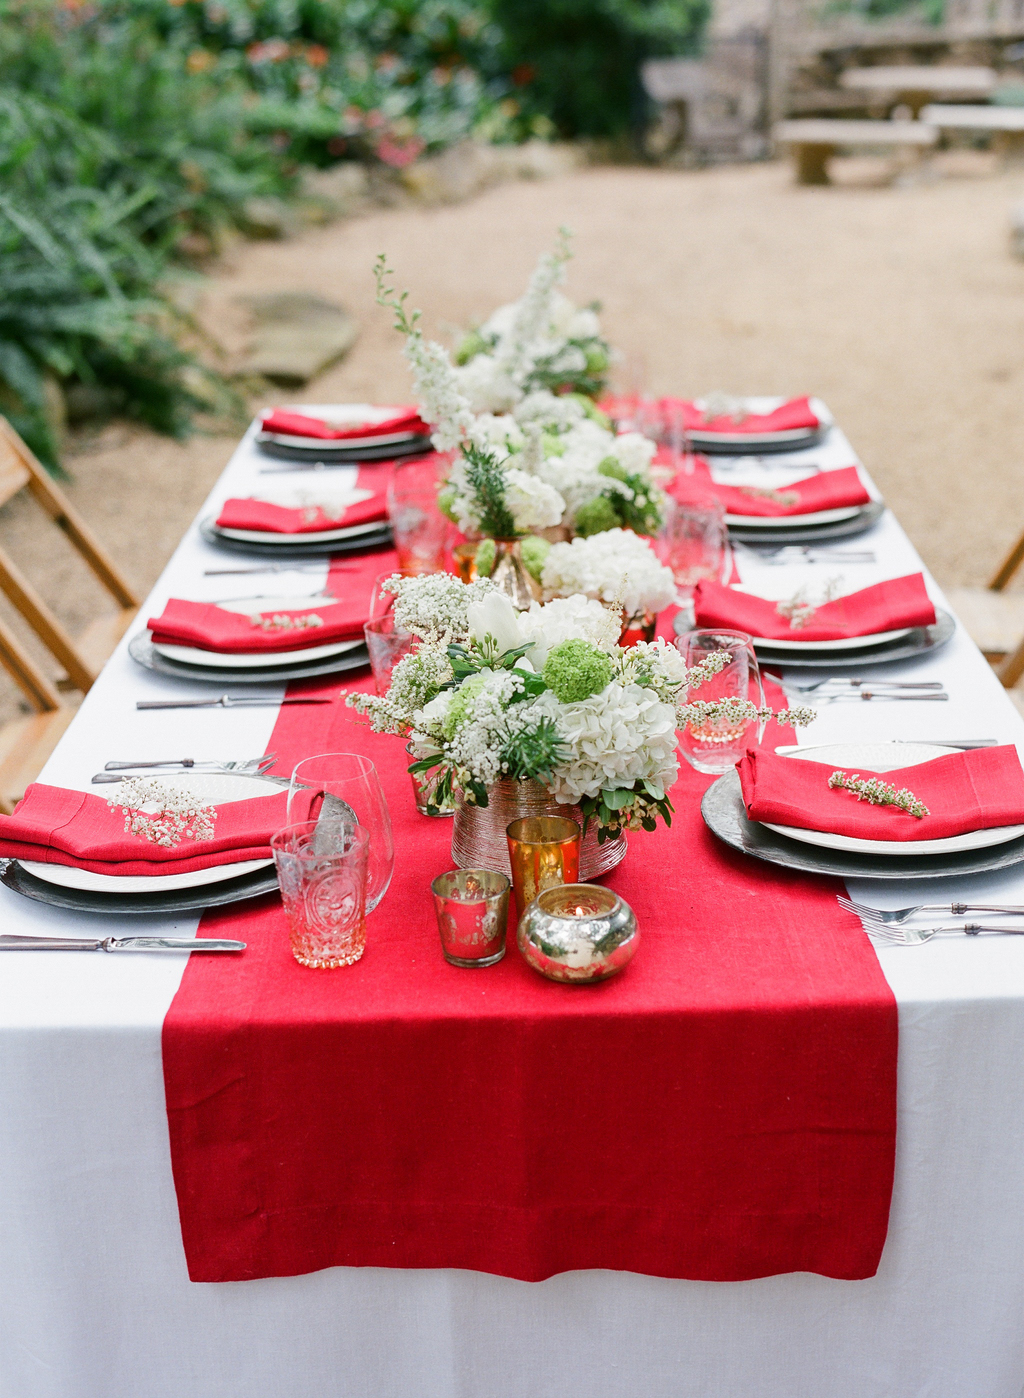 Styled-wedding-santa-barbara-chic-beaux-arts-photographie-italian-bohemian-wedding-venue-table-setting-red-white-flowers-antique-glass-061.full